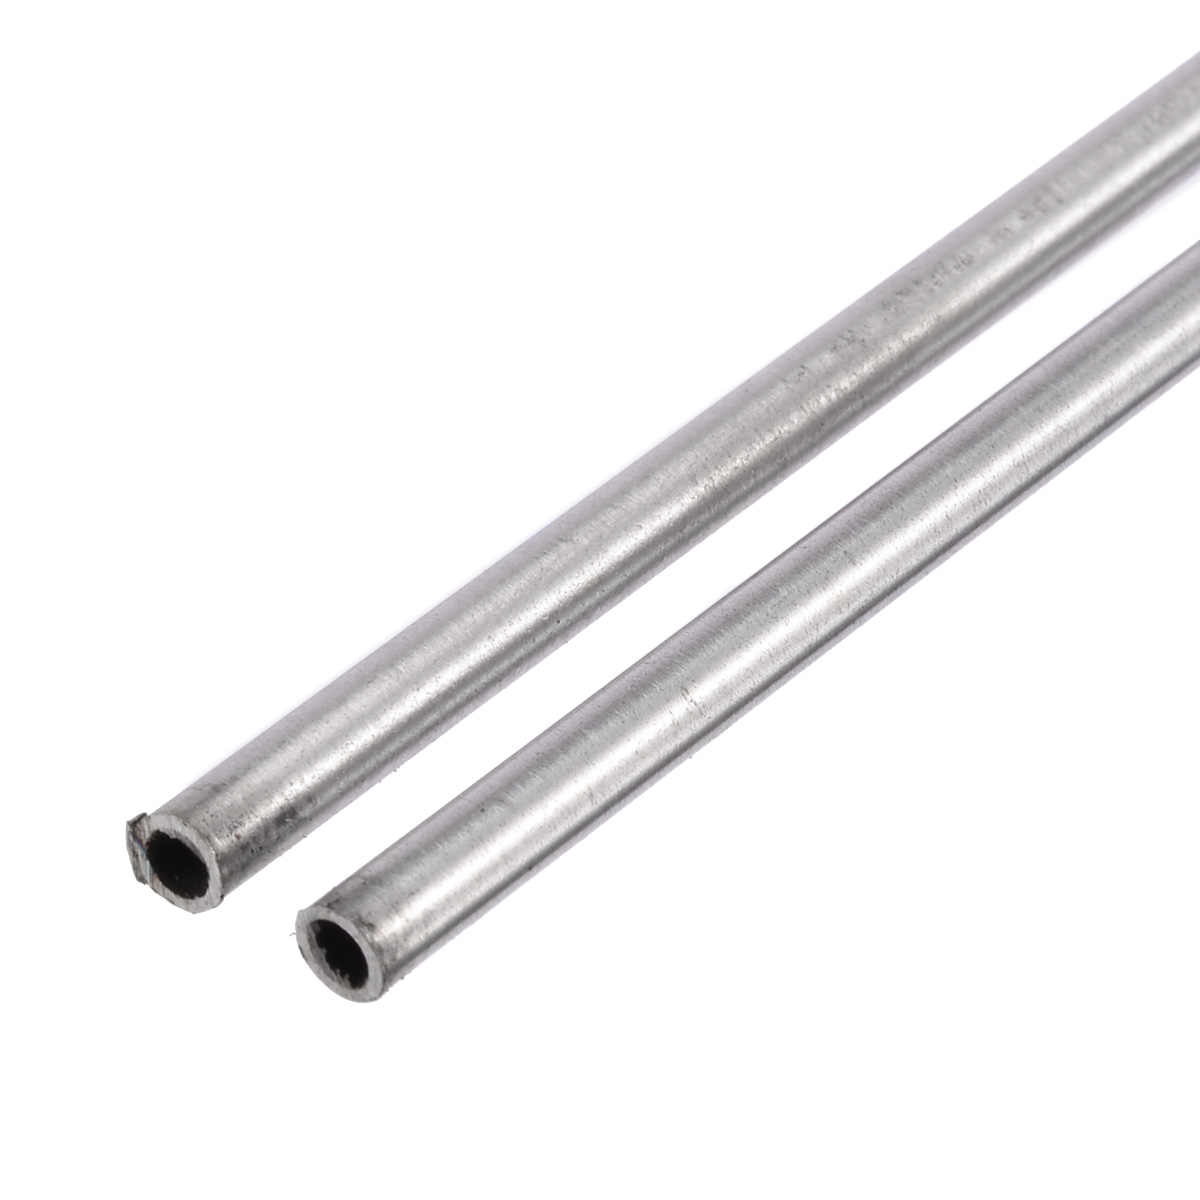 Length 250mm #E4-W252 2pcs  304 Stainless Steel Capillary Tube OD 4mm x 3mm ID